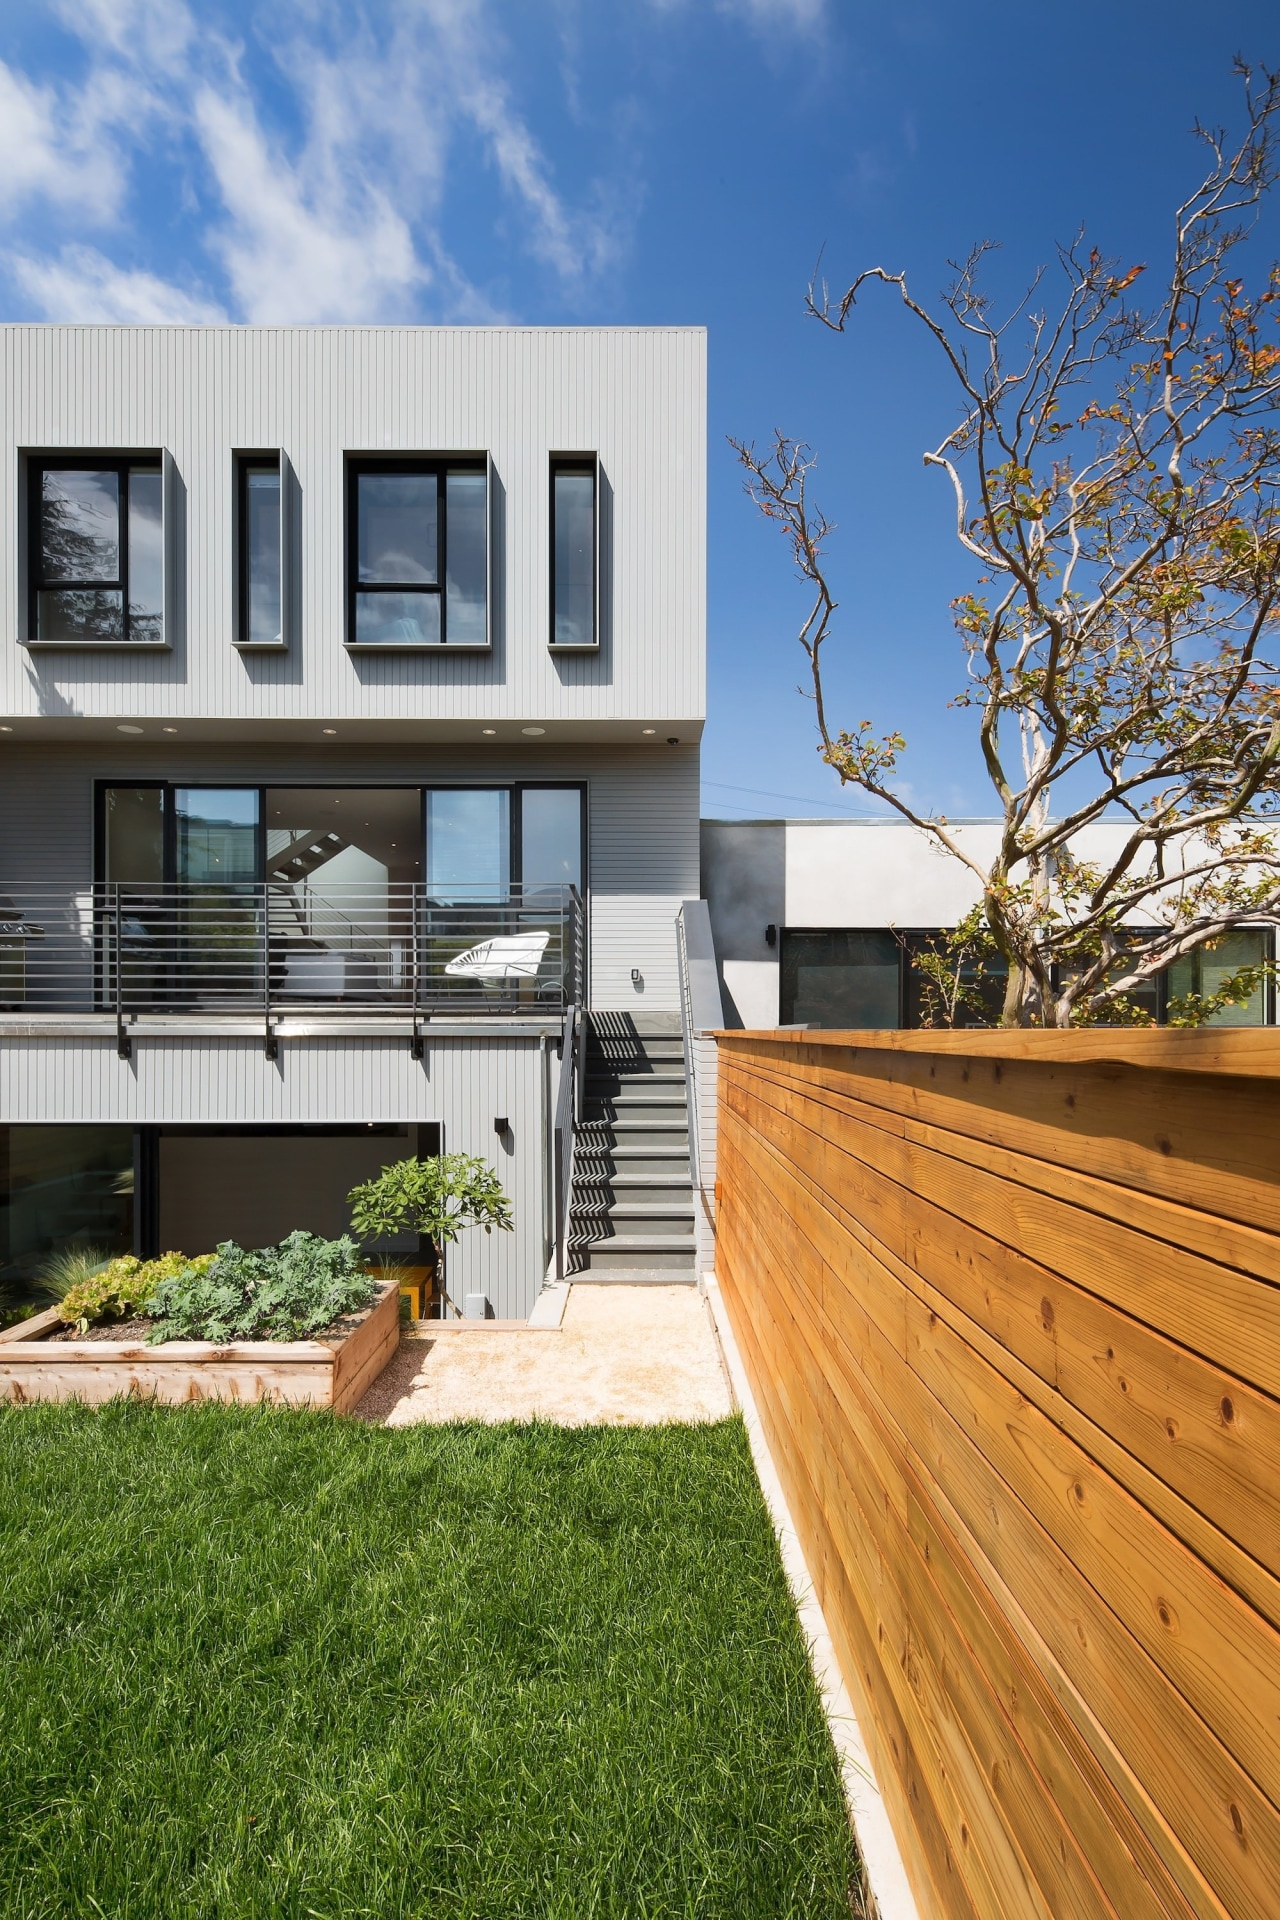 A timber boundary fence contrasts with the home apartment, architecture, backyard, balcony, deck, estate, facade, grass, home, house, neighbourhood, outdoor structure, property, real estate, residential area, siding, wood, yard